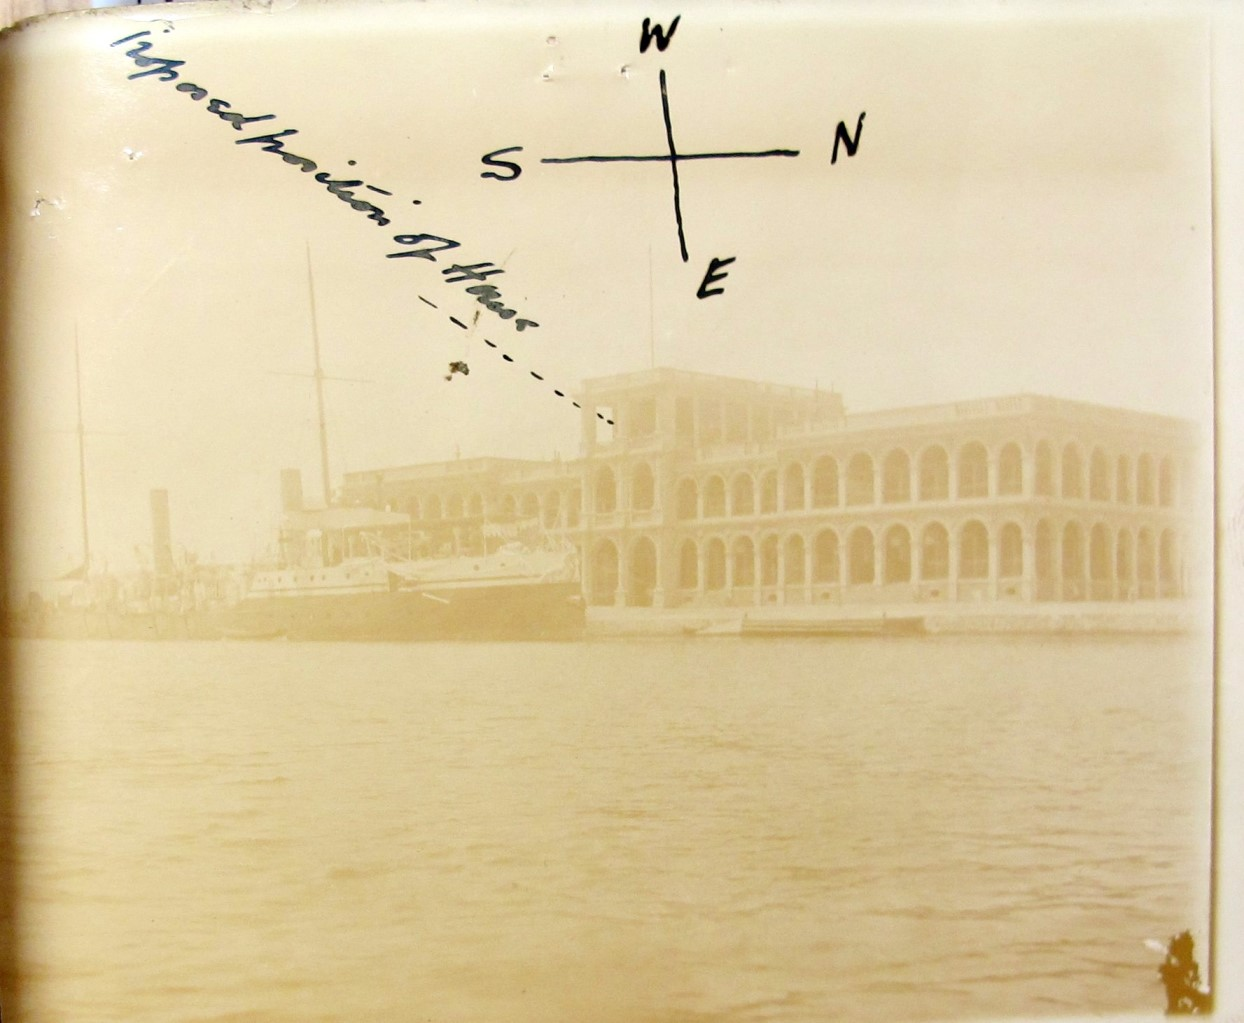 Image of a photograph showing the location of pigeon loft Port Said